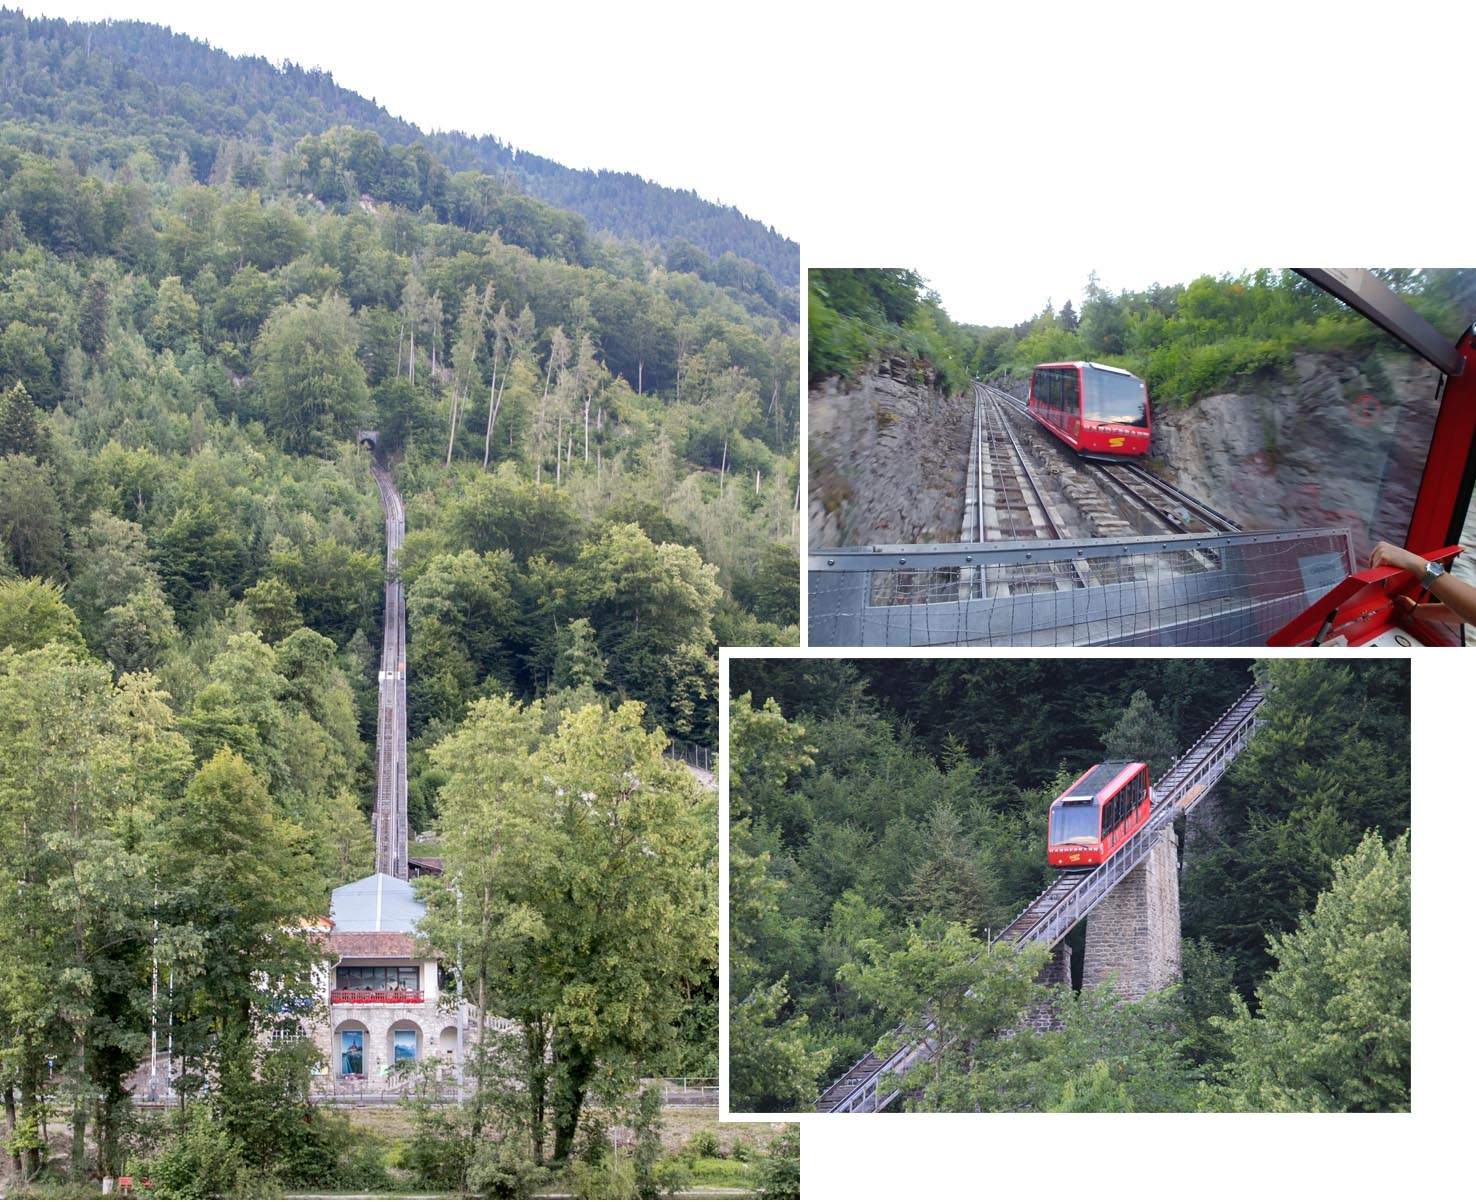 Funicular stations